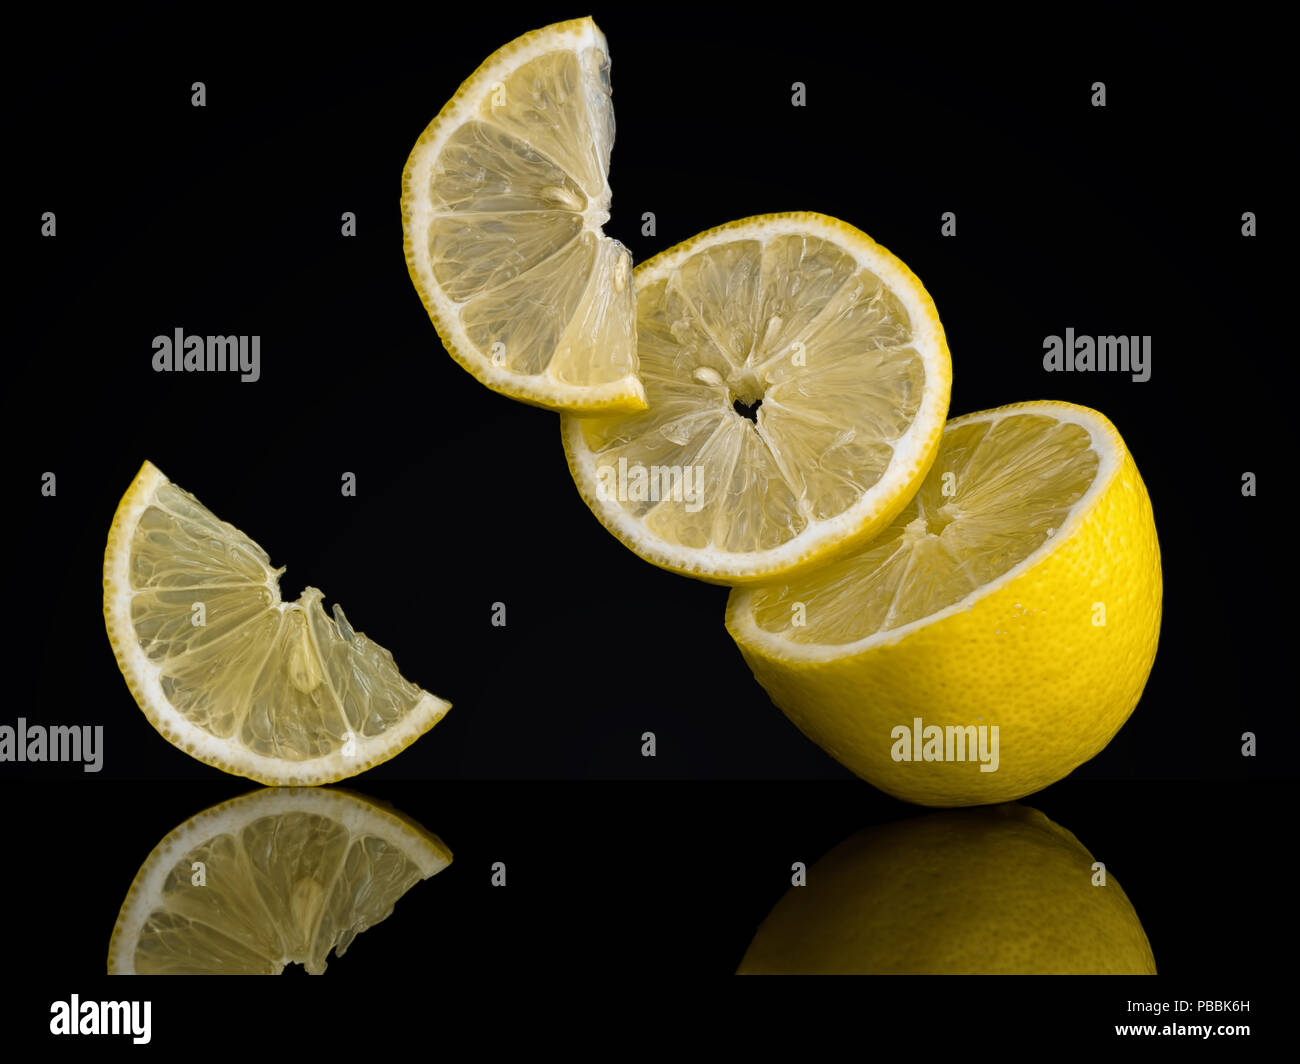 Lemon slices, pieces on a black background. Unusual photo. Seem to defy gravity  - Stock Image